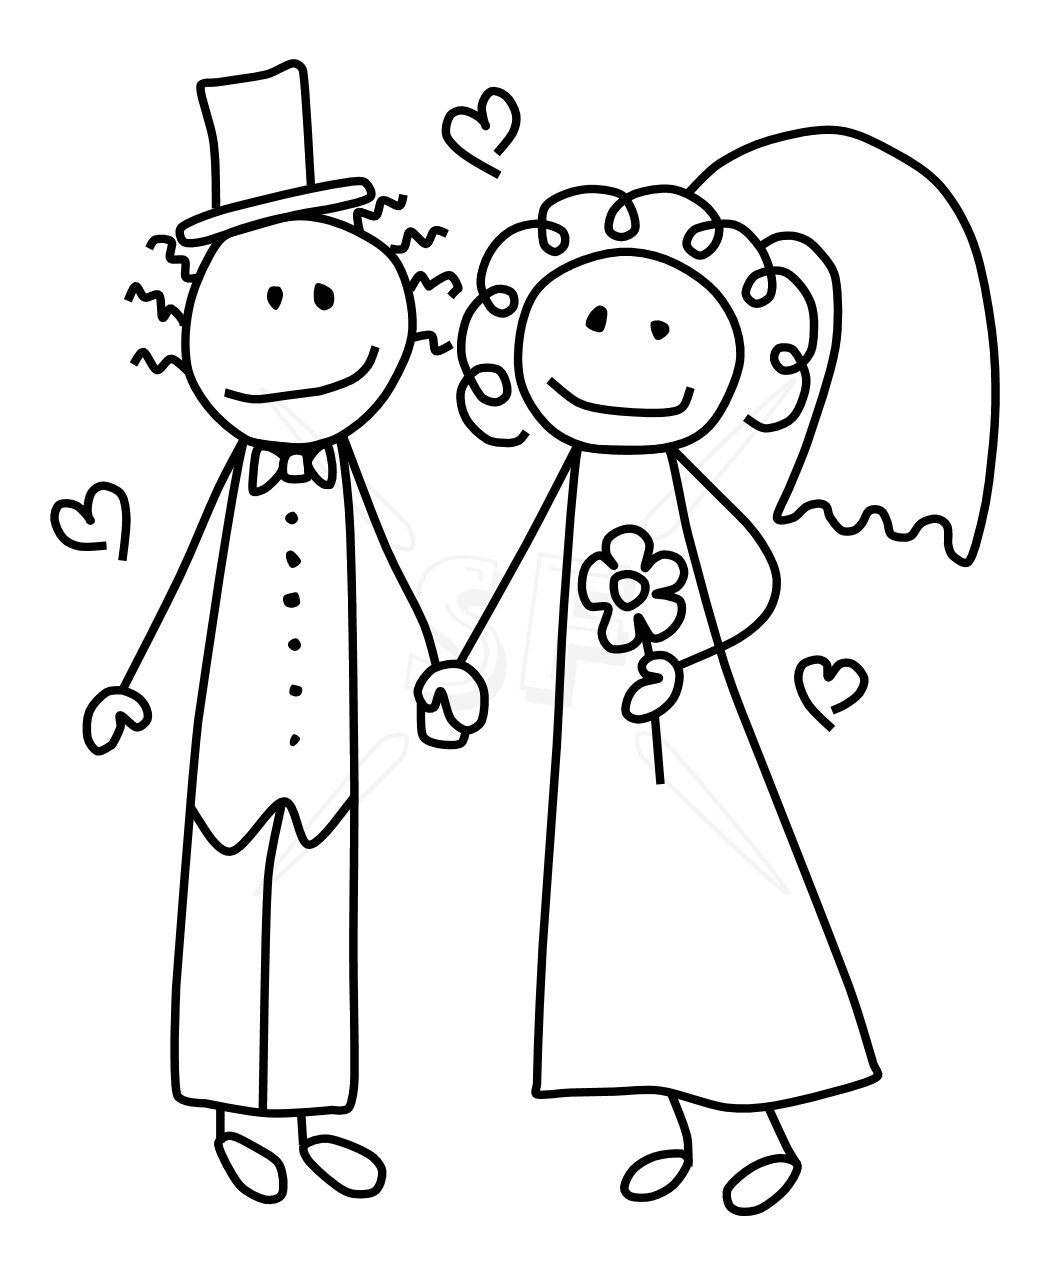 Bride clipart cute On for Stitching Result more